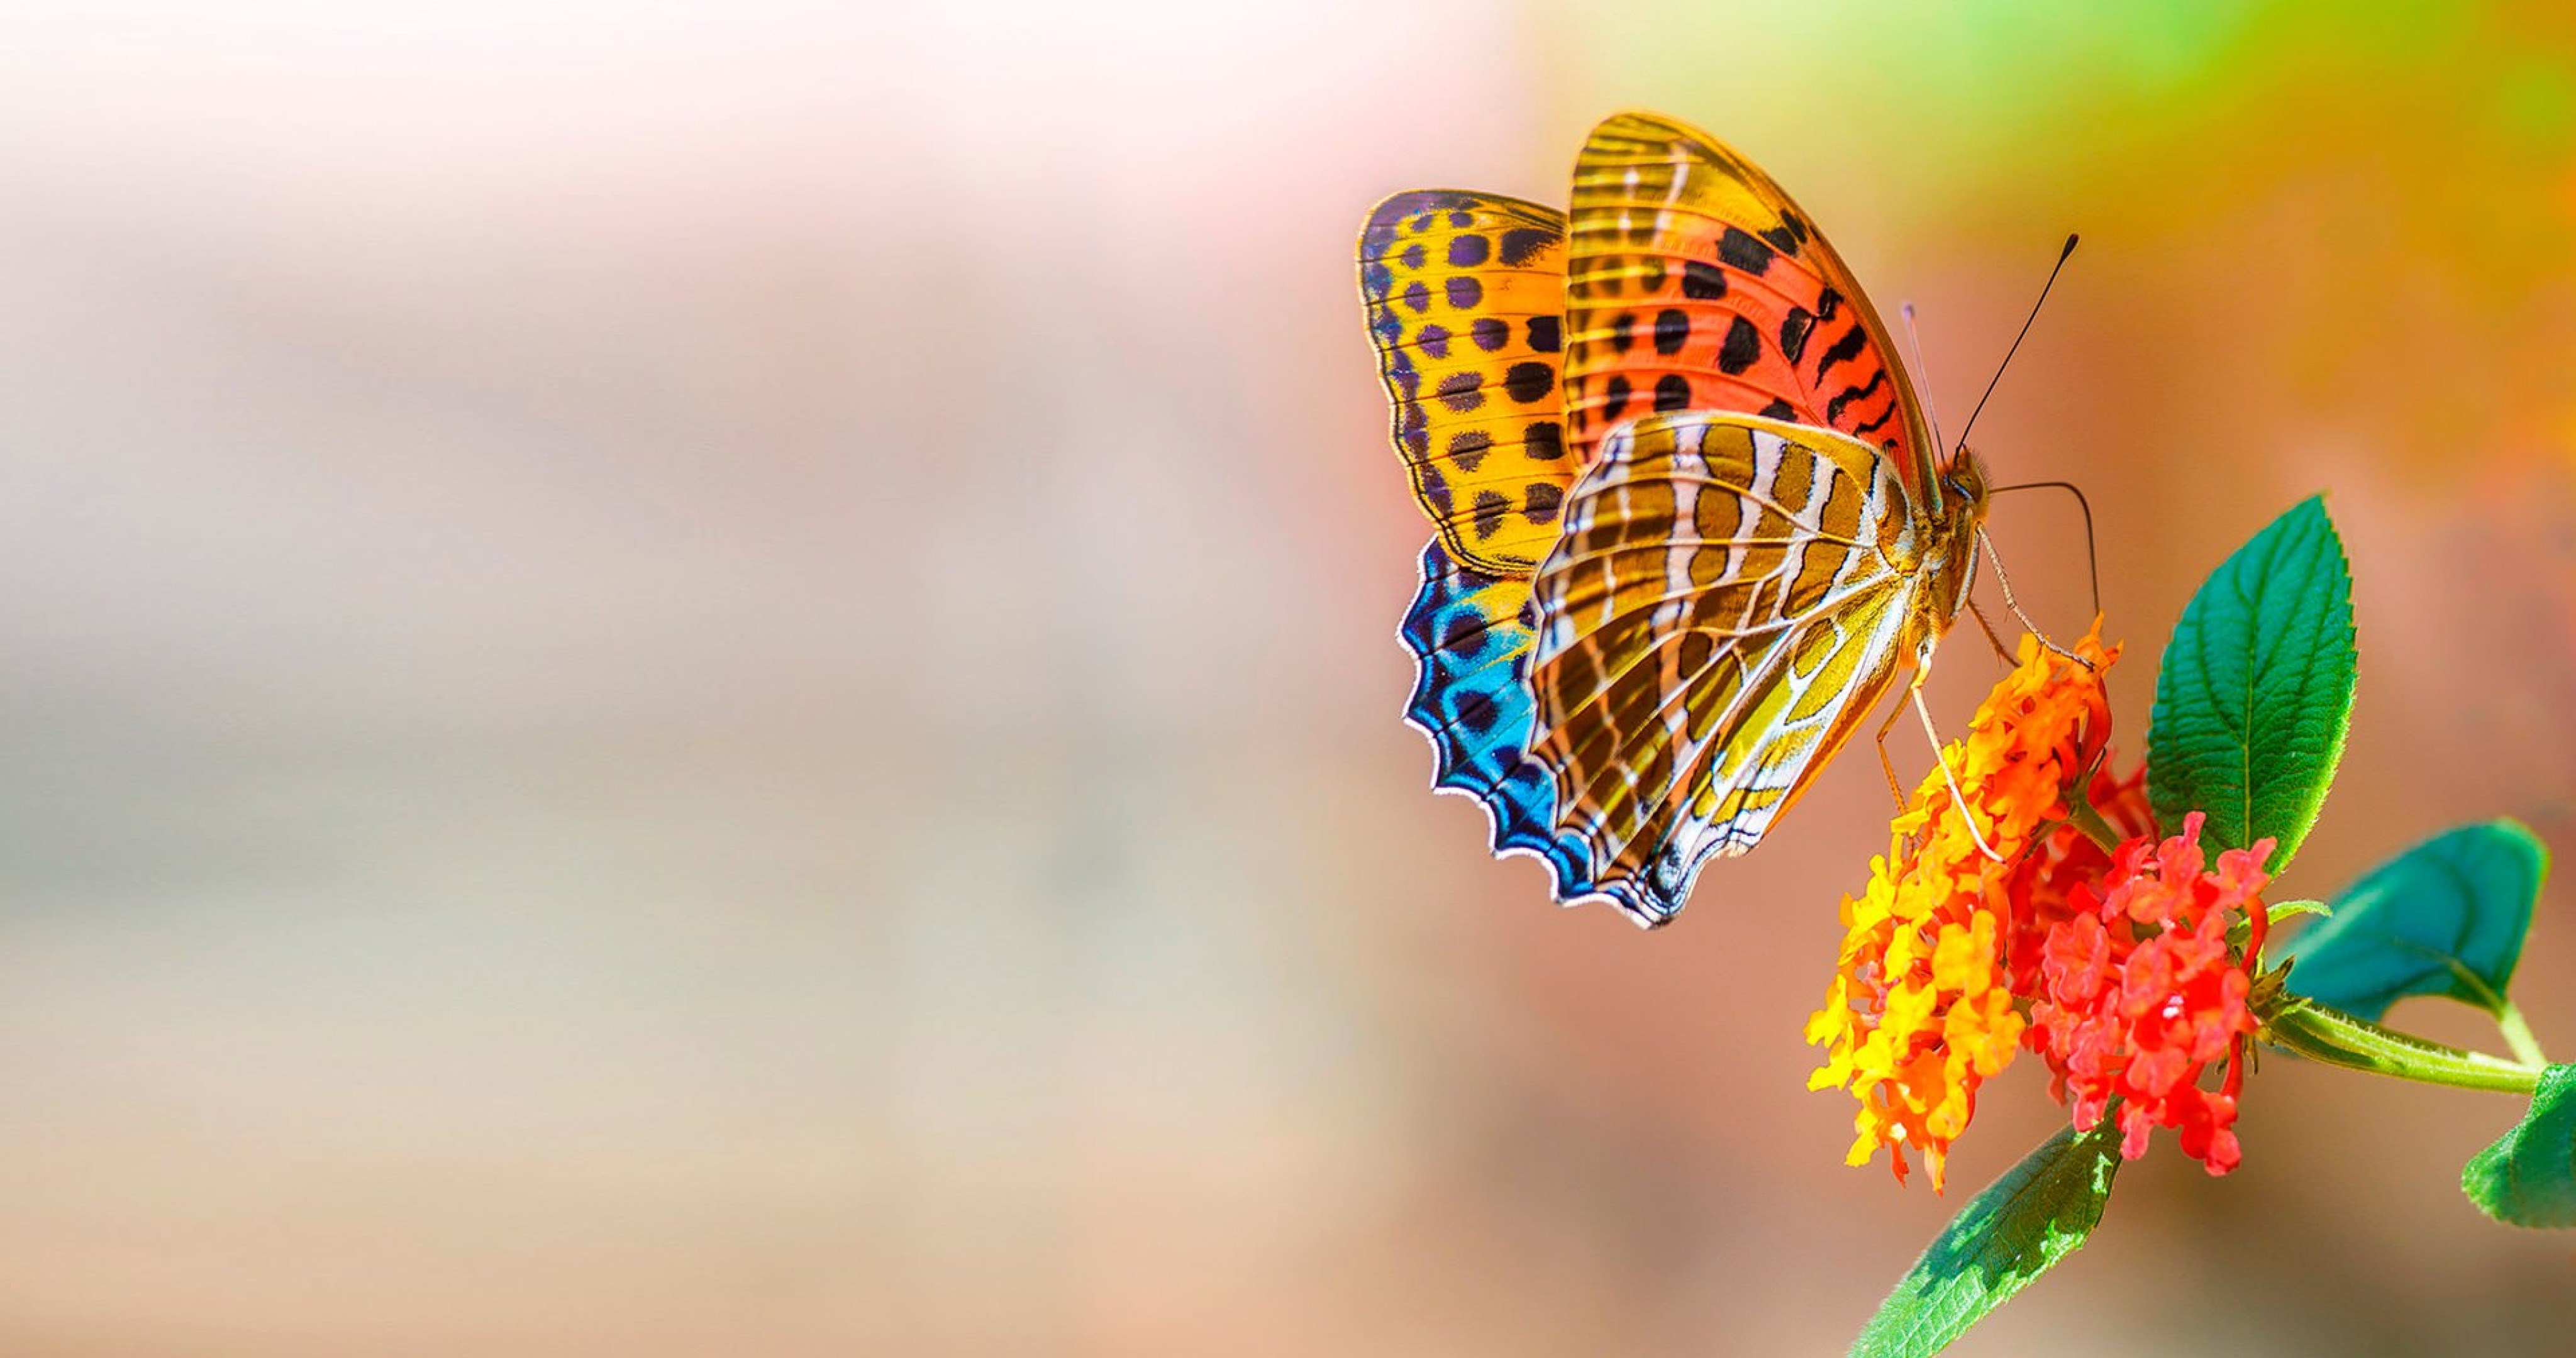 Download Wallpaper High Quality Butterfly - 72394-butterfly-and-flower-4k-ultra-hd-wallpaper__nature  2018_73496.jpg